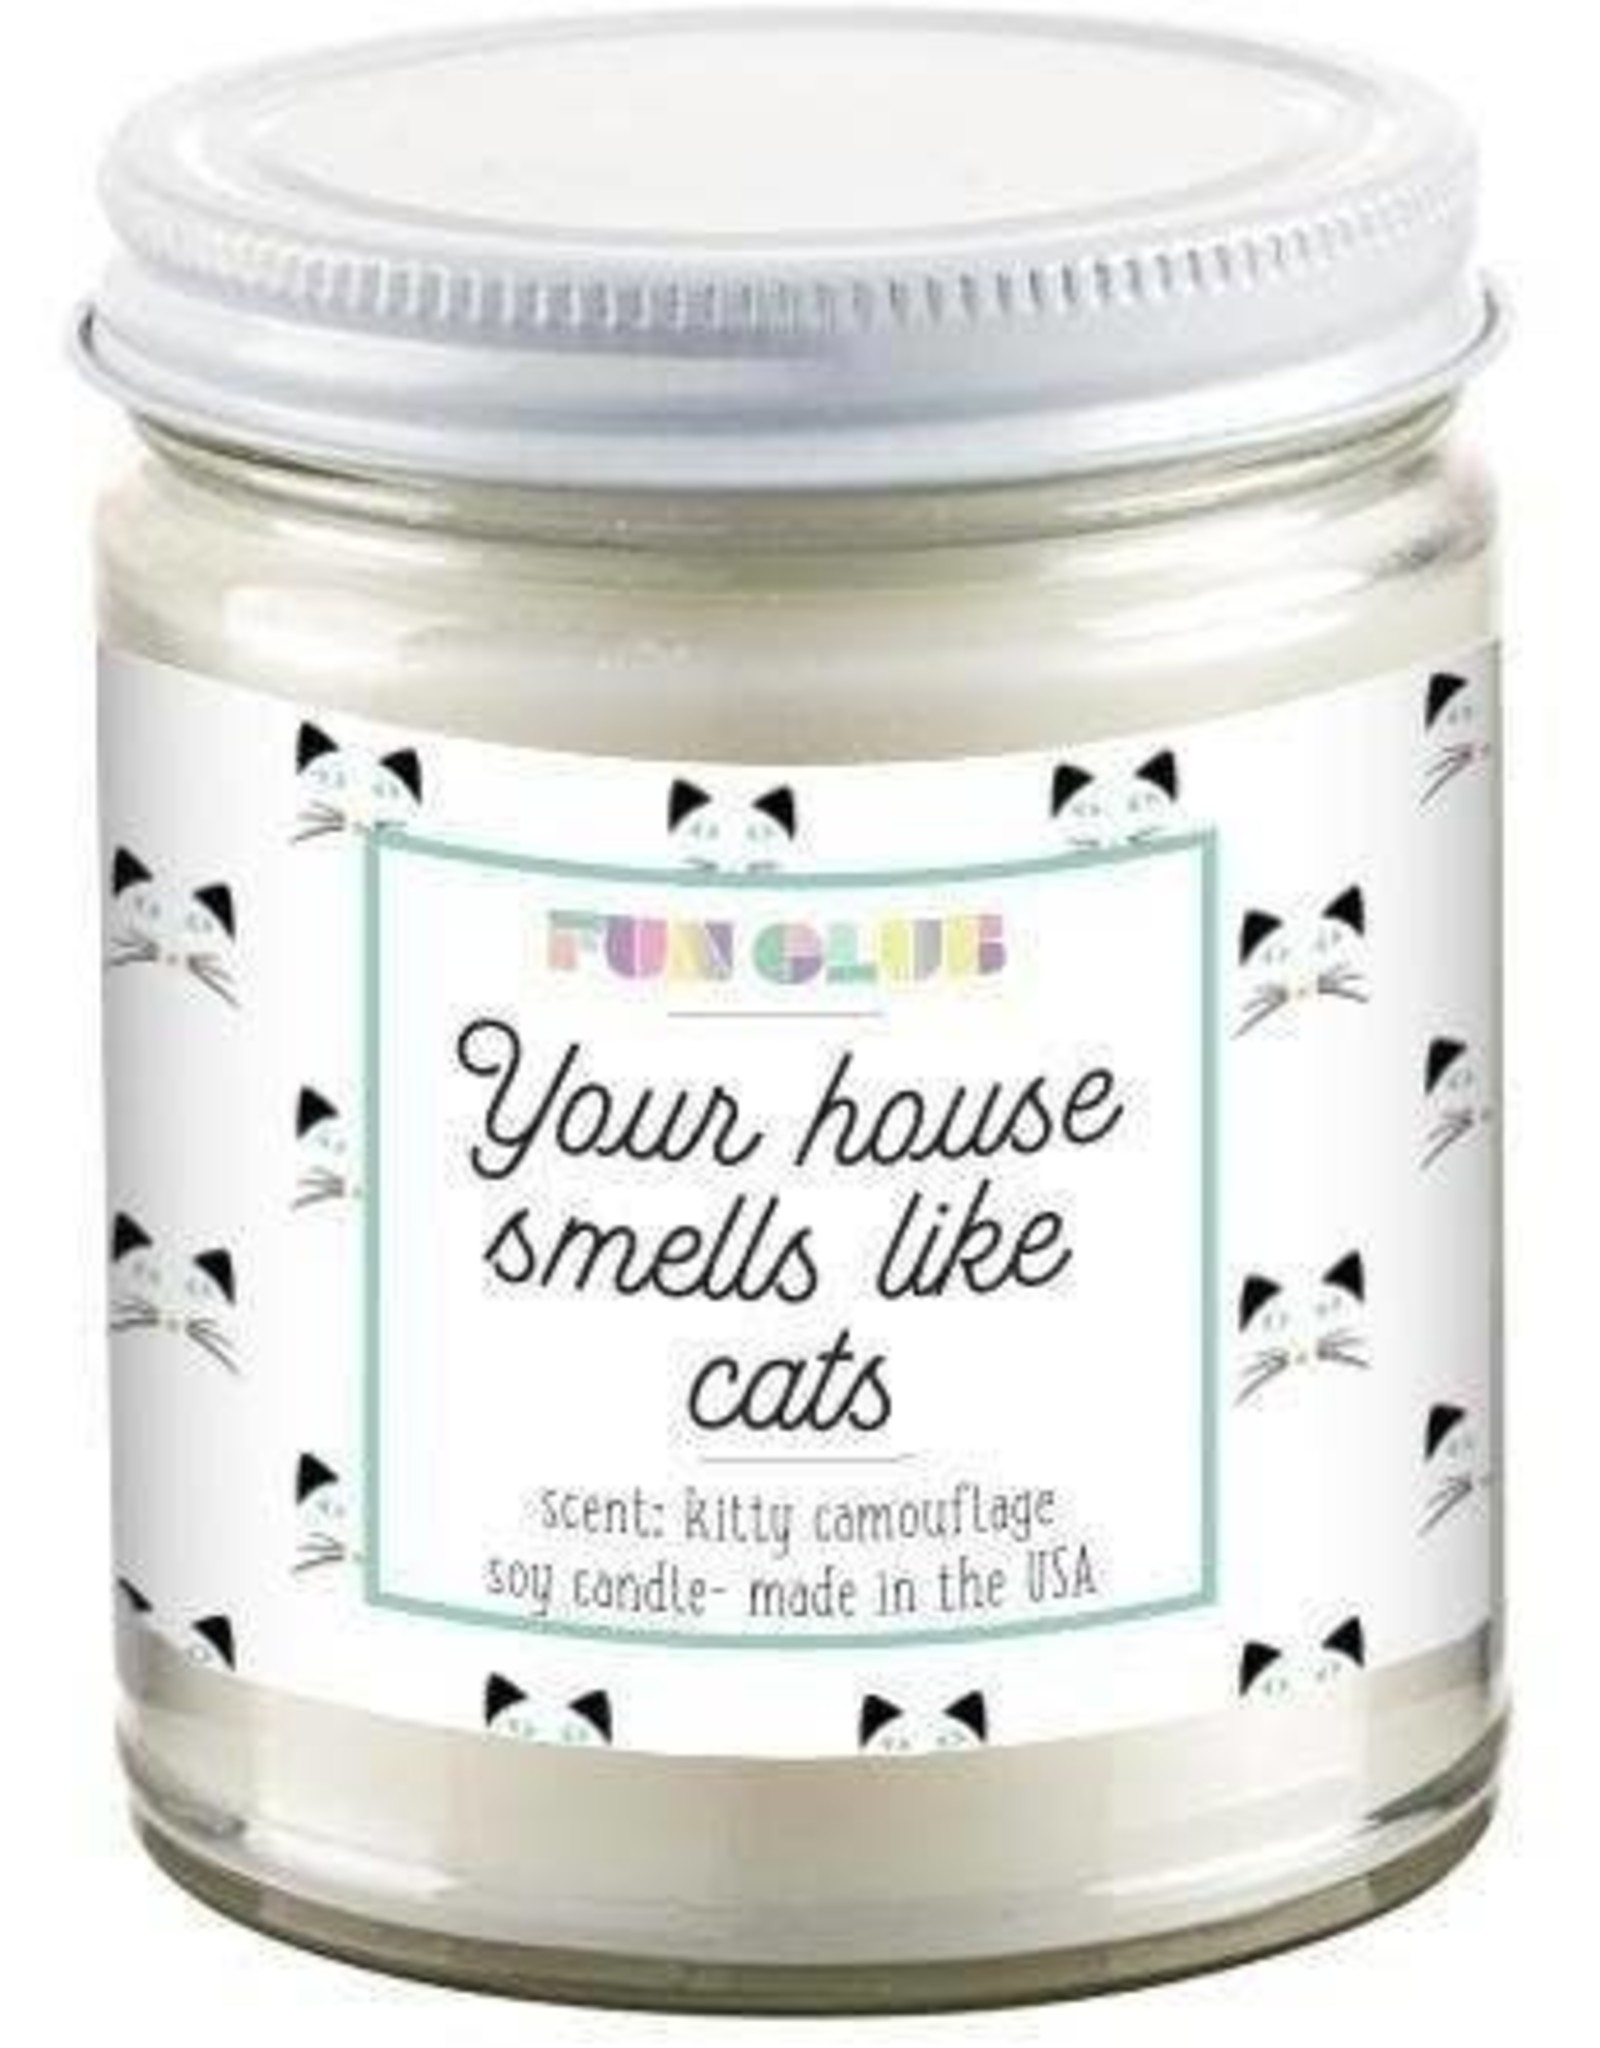 Fun Club Your House Smells Like Cats Candle